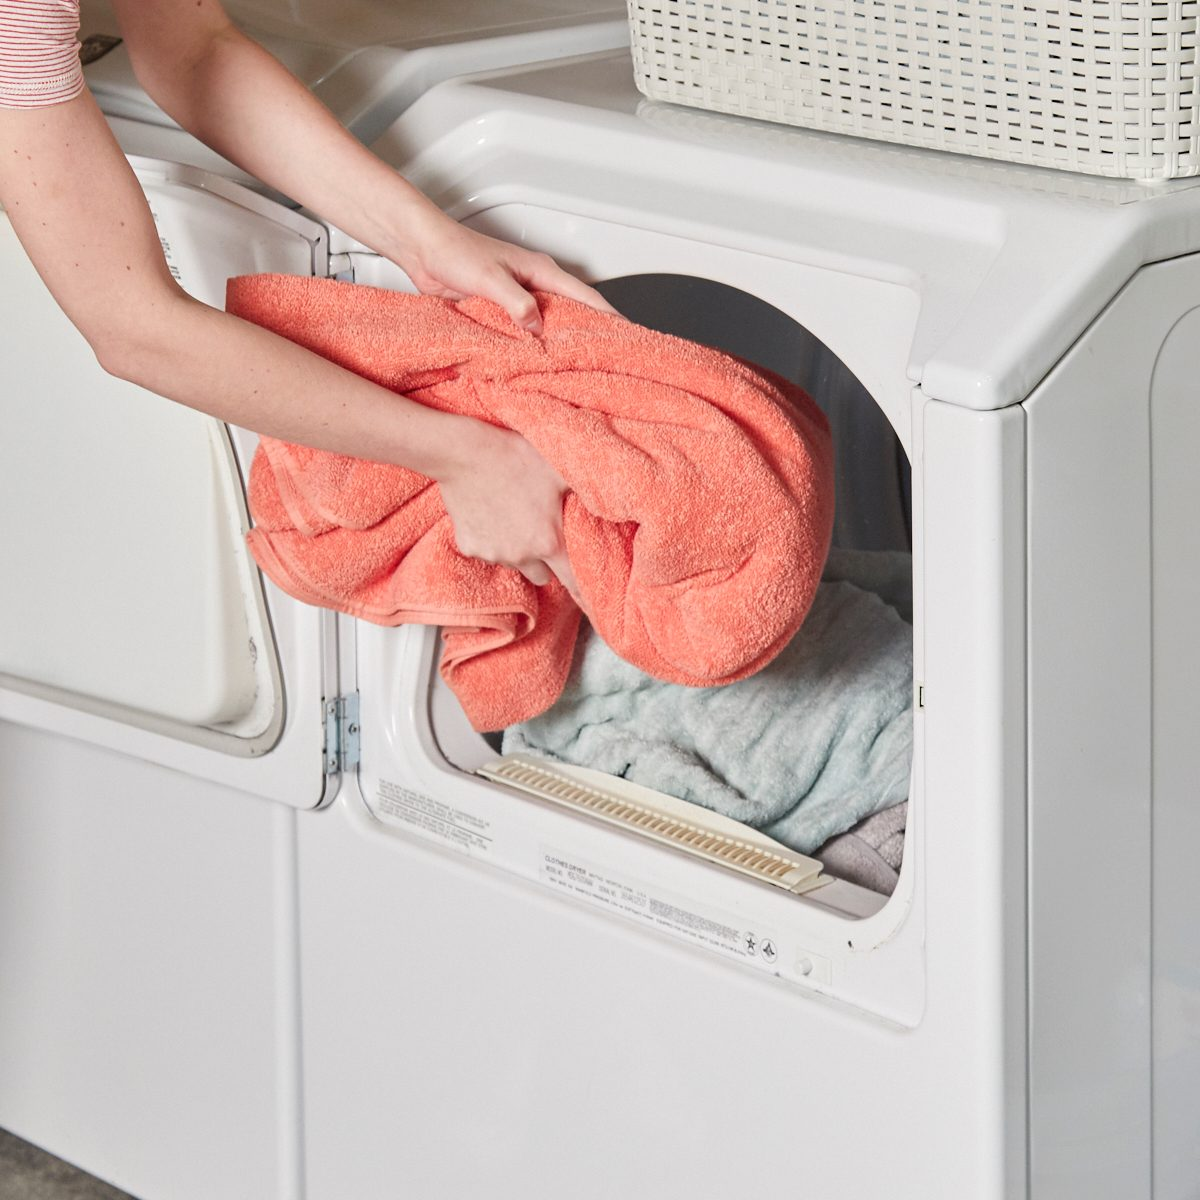 17 Laundry Hacks to Save You Time & Money!